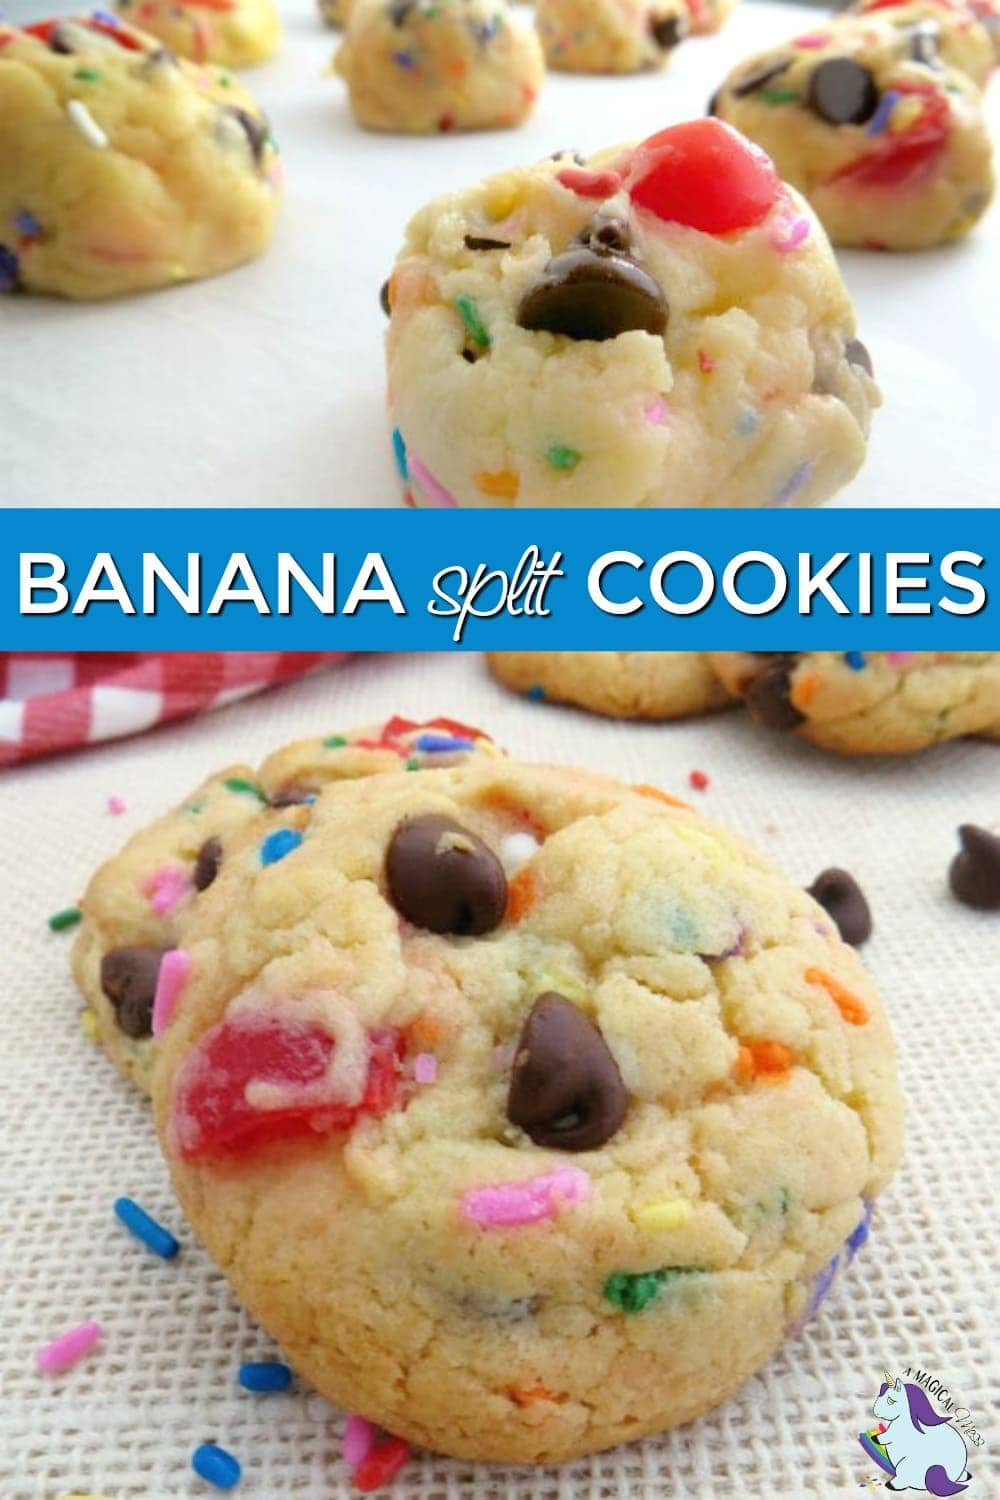 Banana split cookies - cookie dough and baked